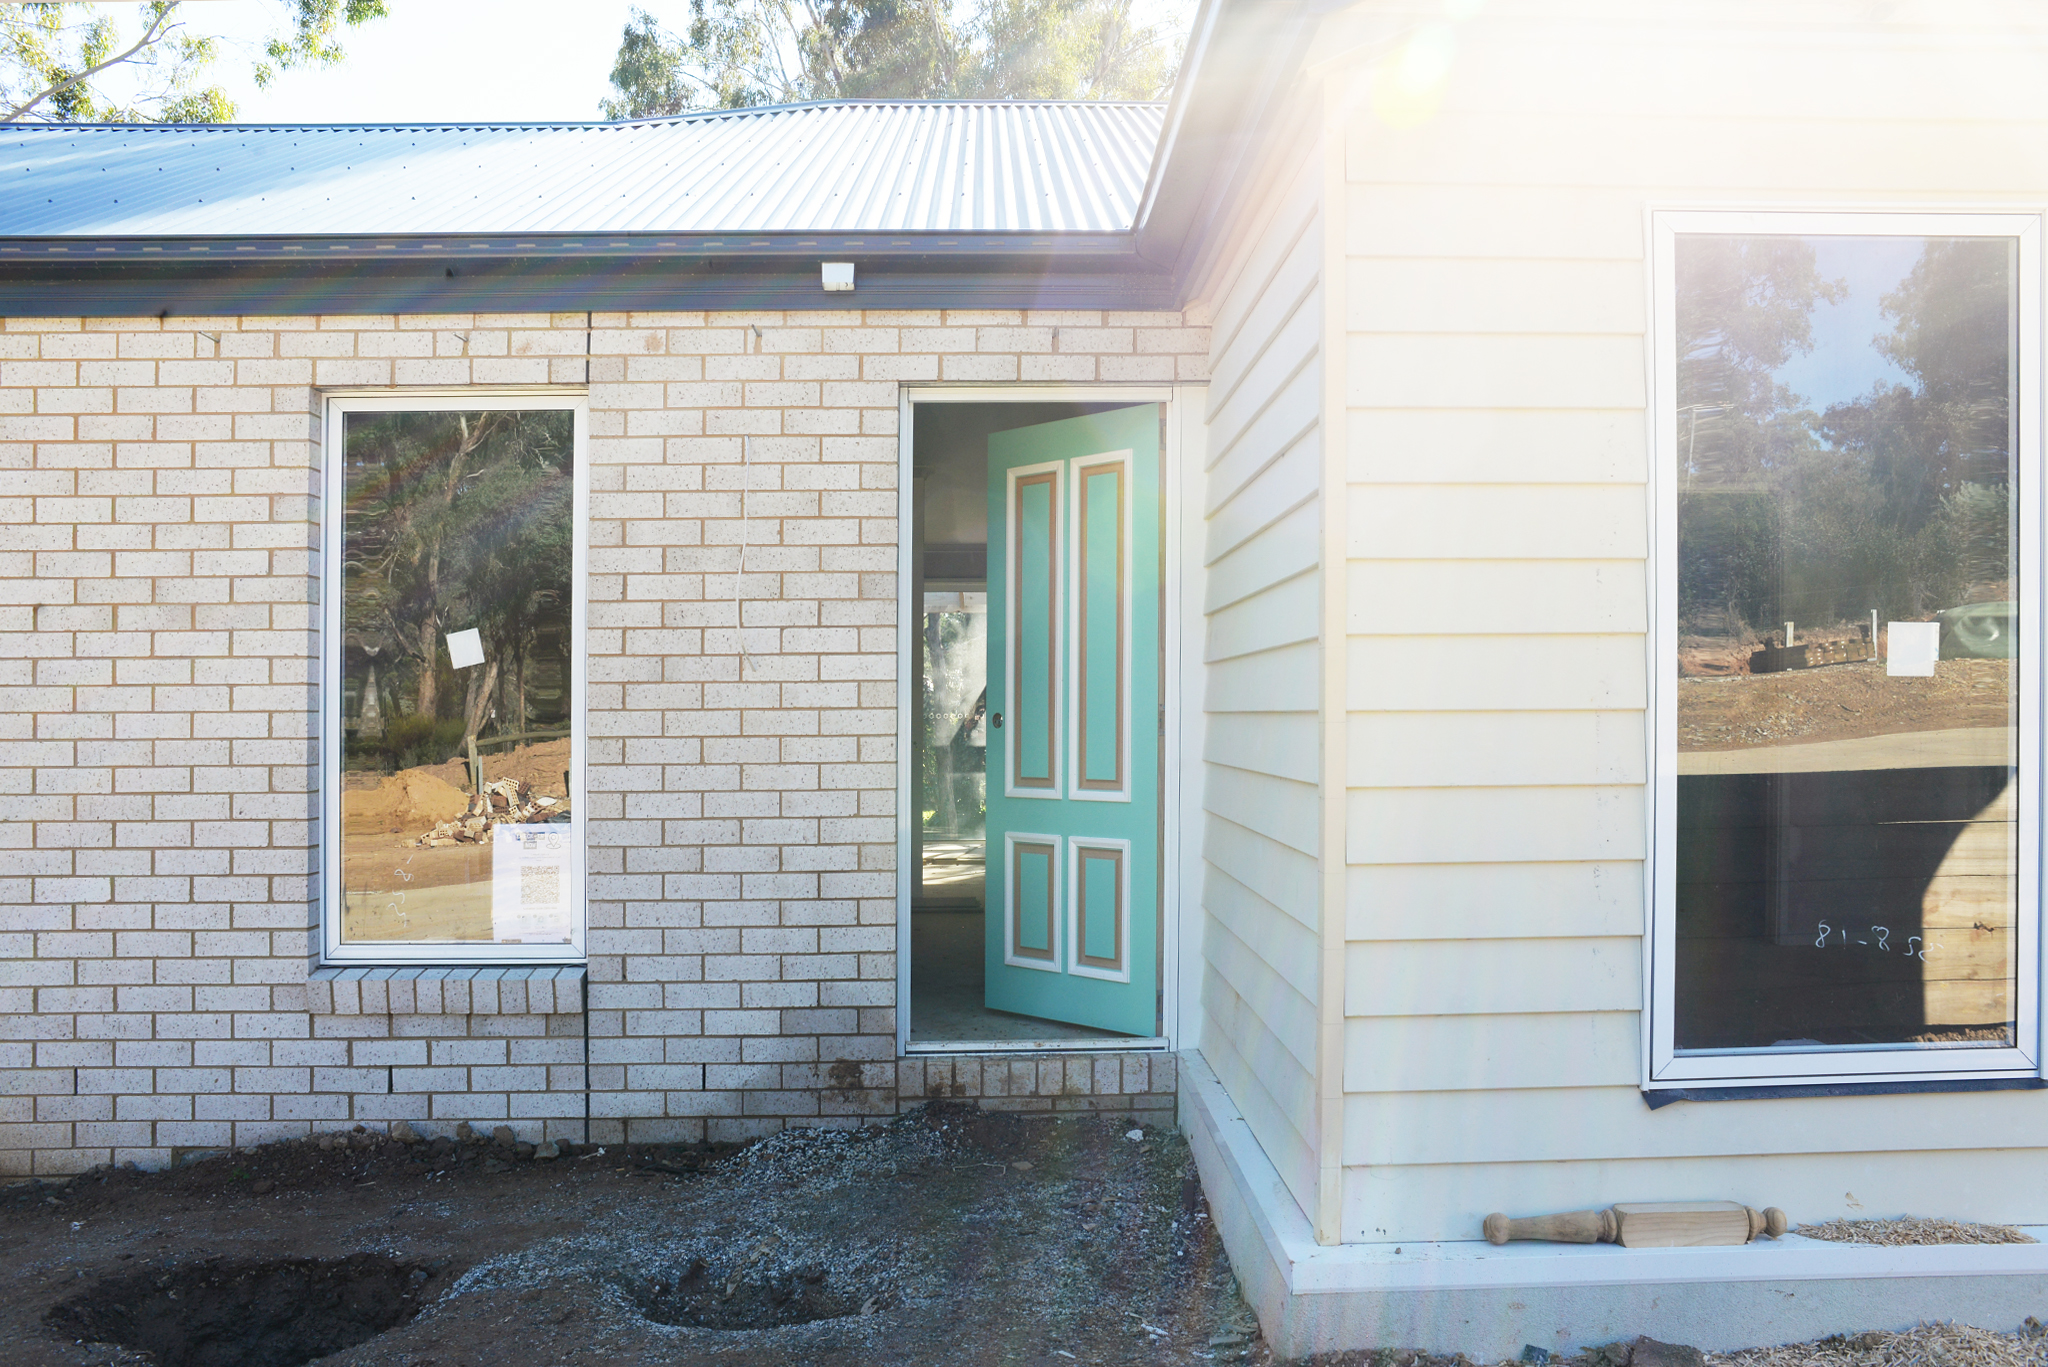 Lot 1 Display Home under construction